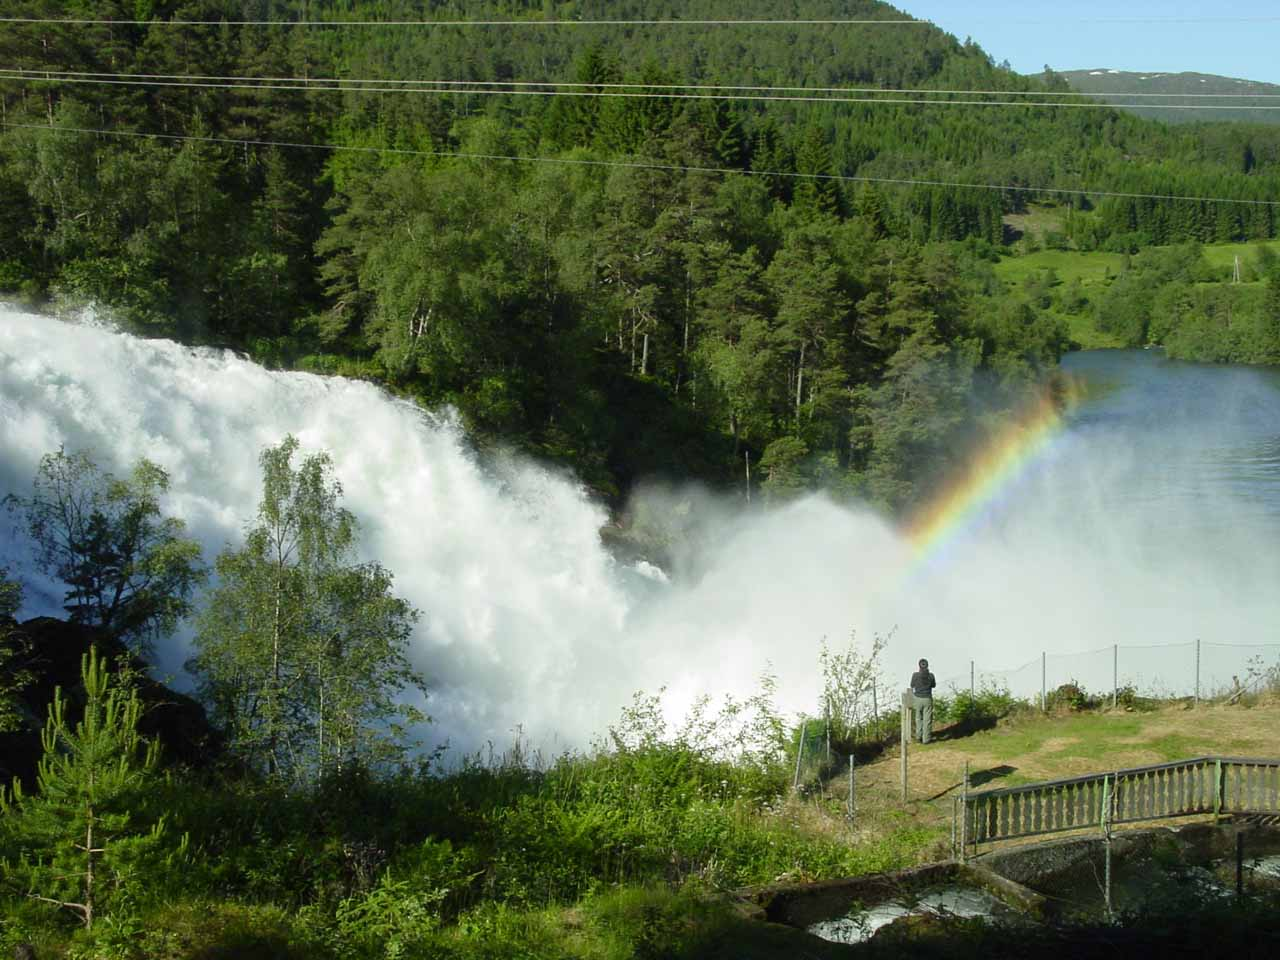 Looking down at Julie being dwarfed by both Eidsfossen and rainbow